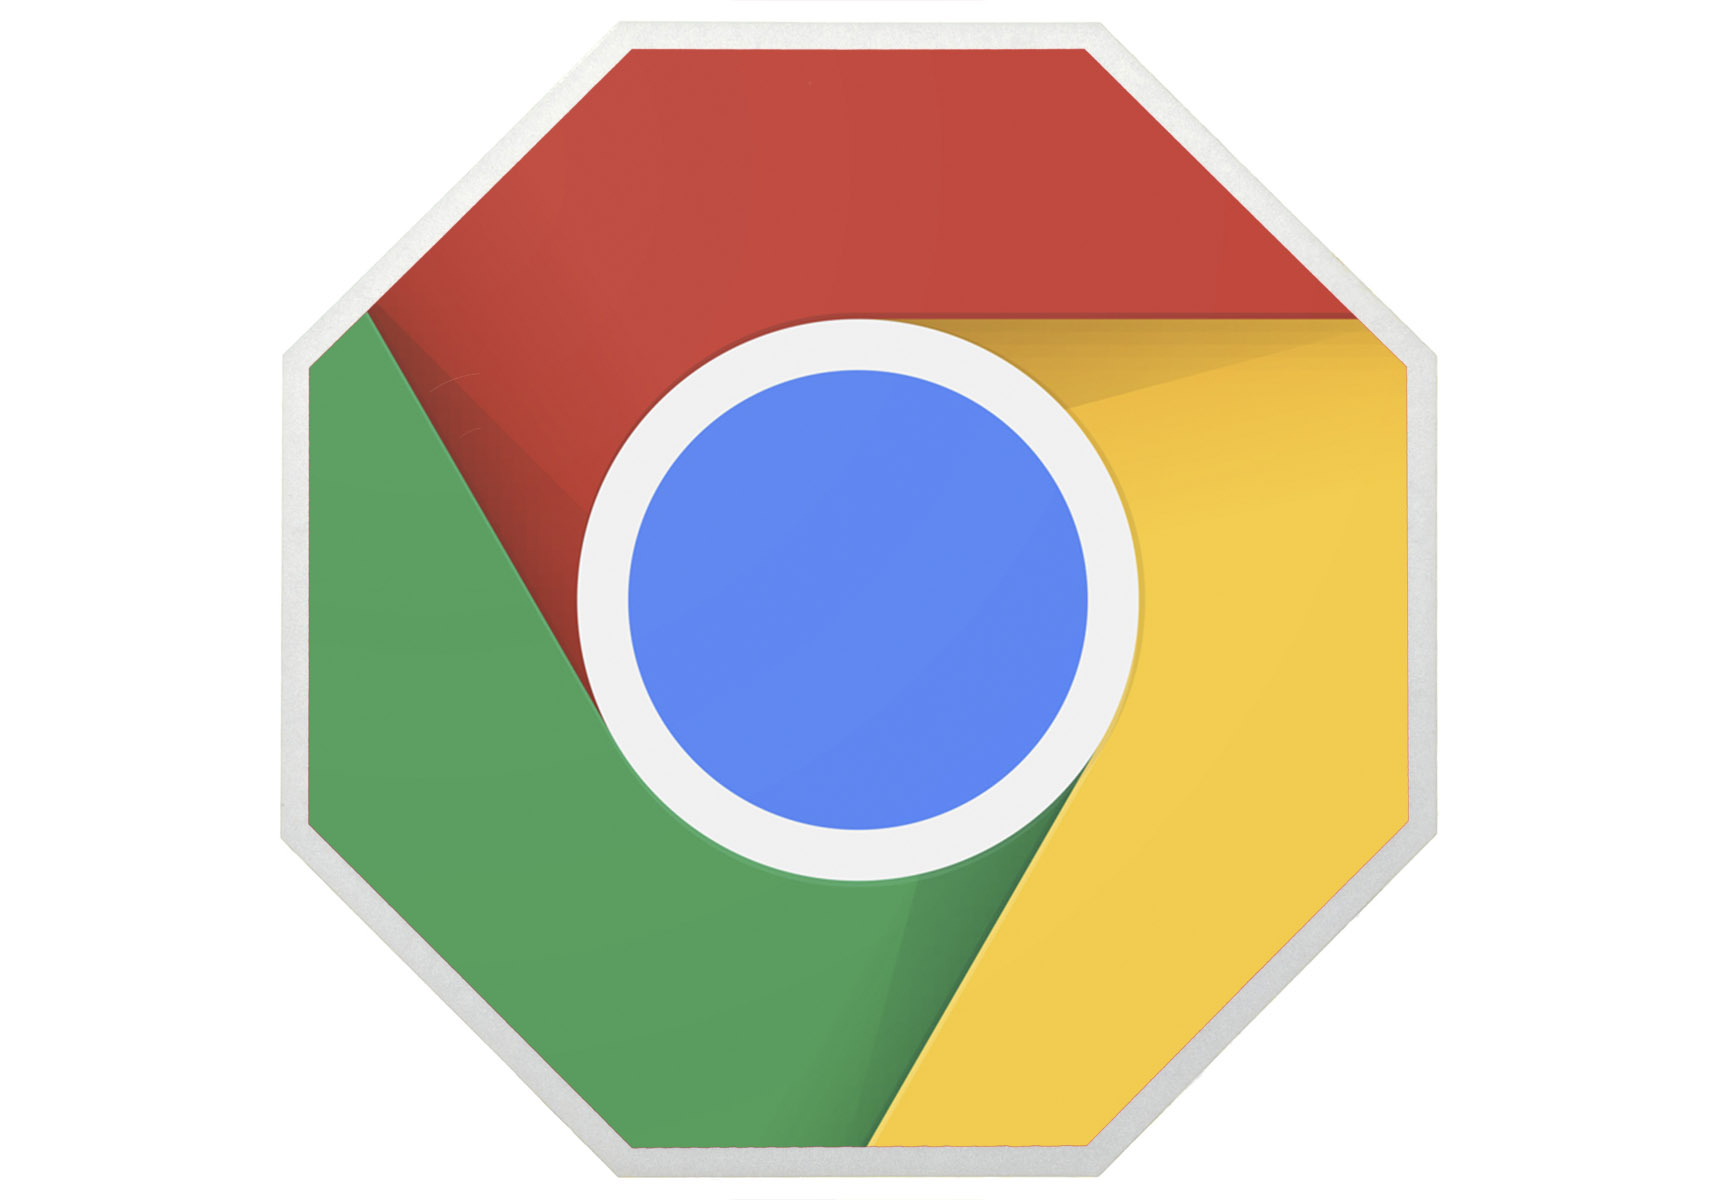 google confirms it will block bad ads in chrome starting in early 2018